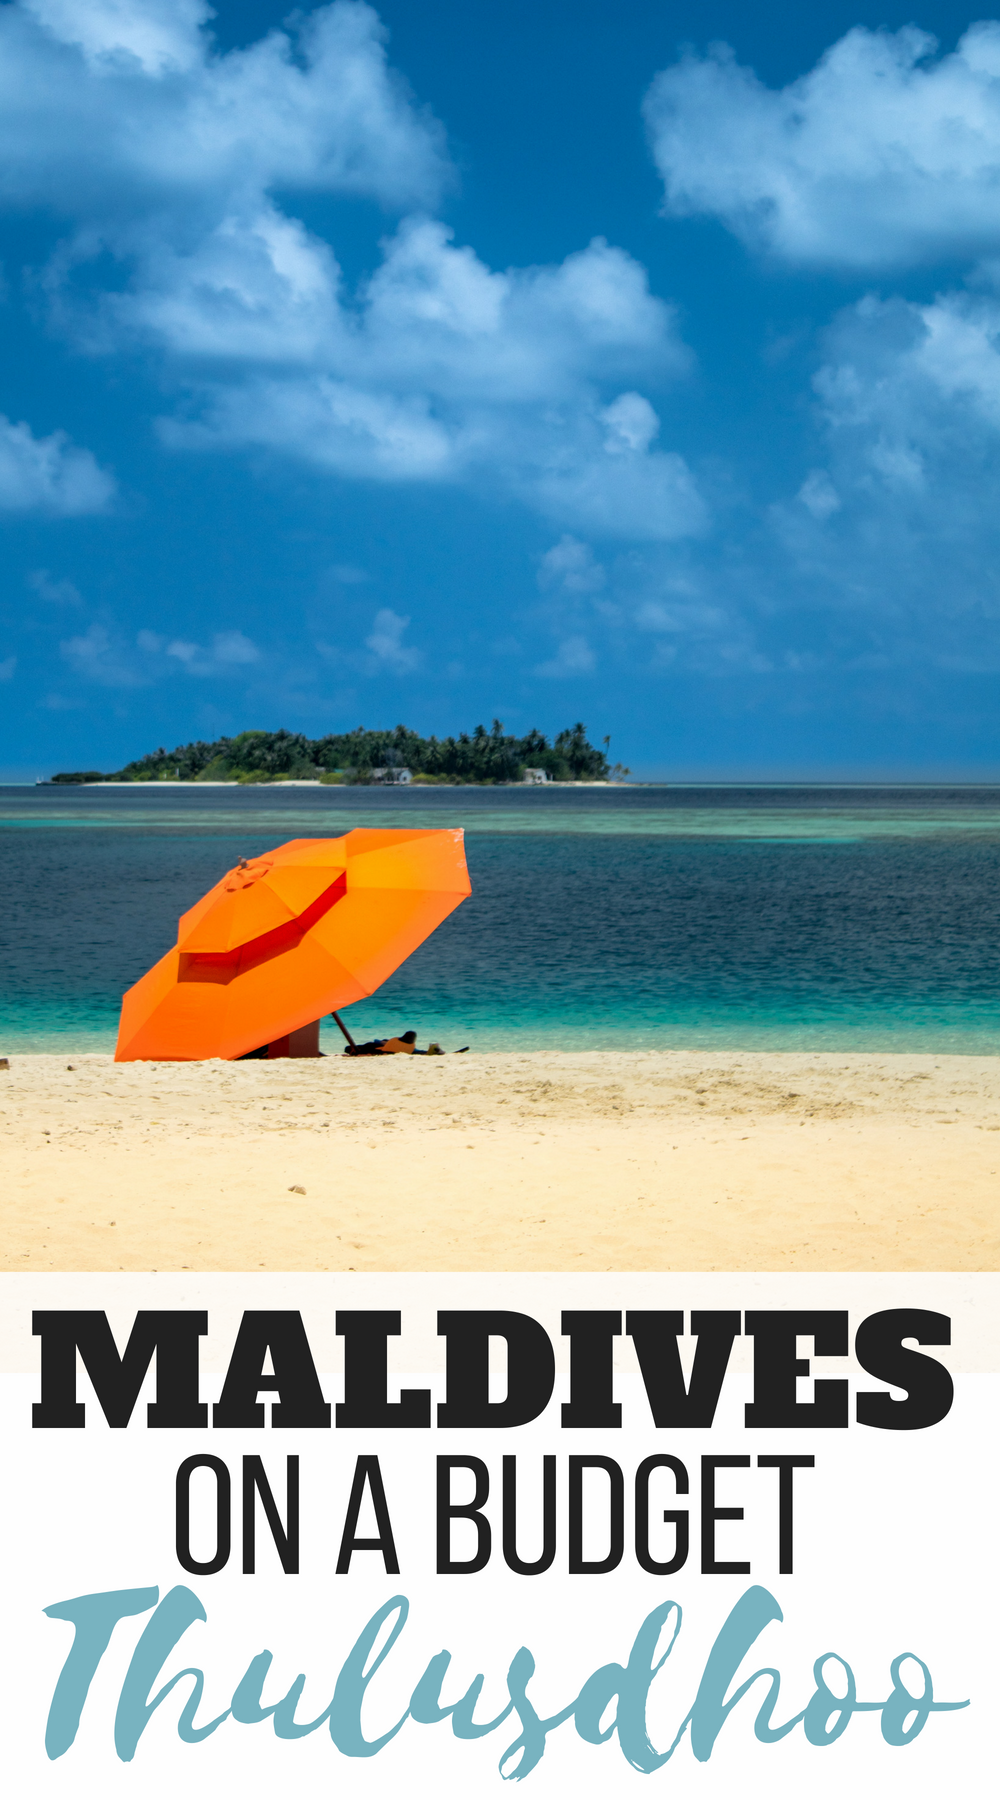 Maldives on a Budget- What to do in Thulusdhoo Maldives - Local Island Maldives